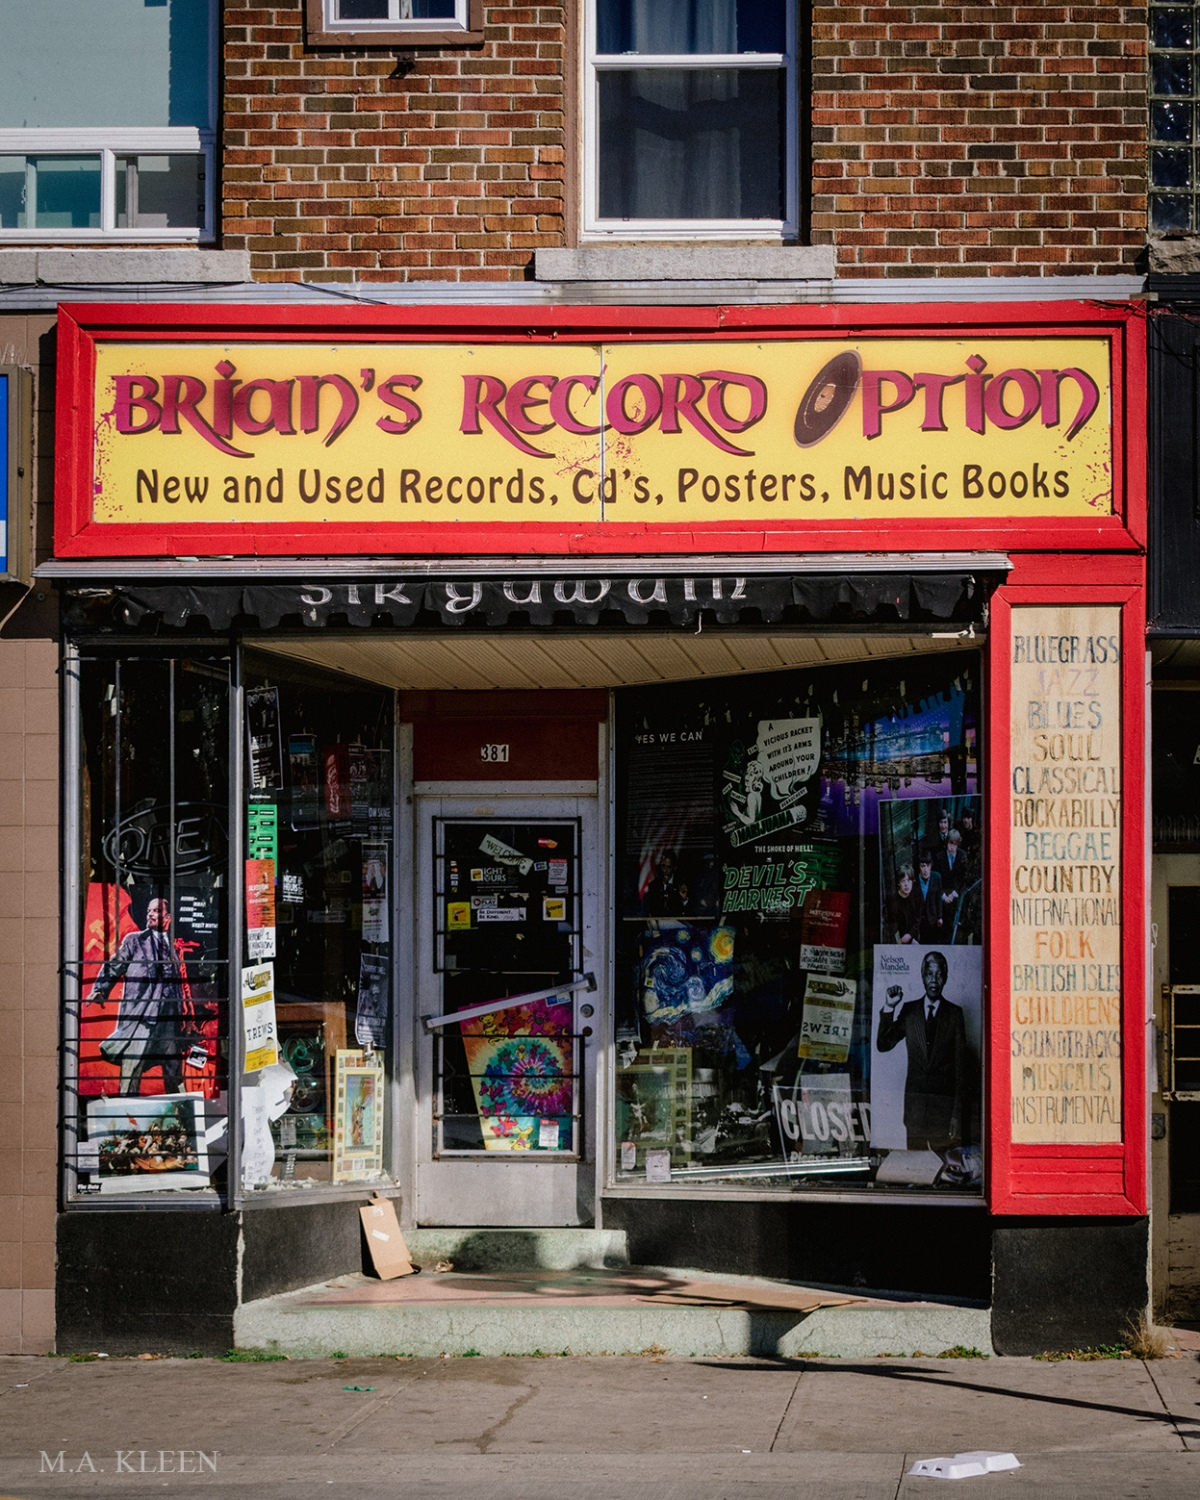 Brians Record Option at 381 Princess Street in Kingston, Ontario, Canada.